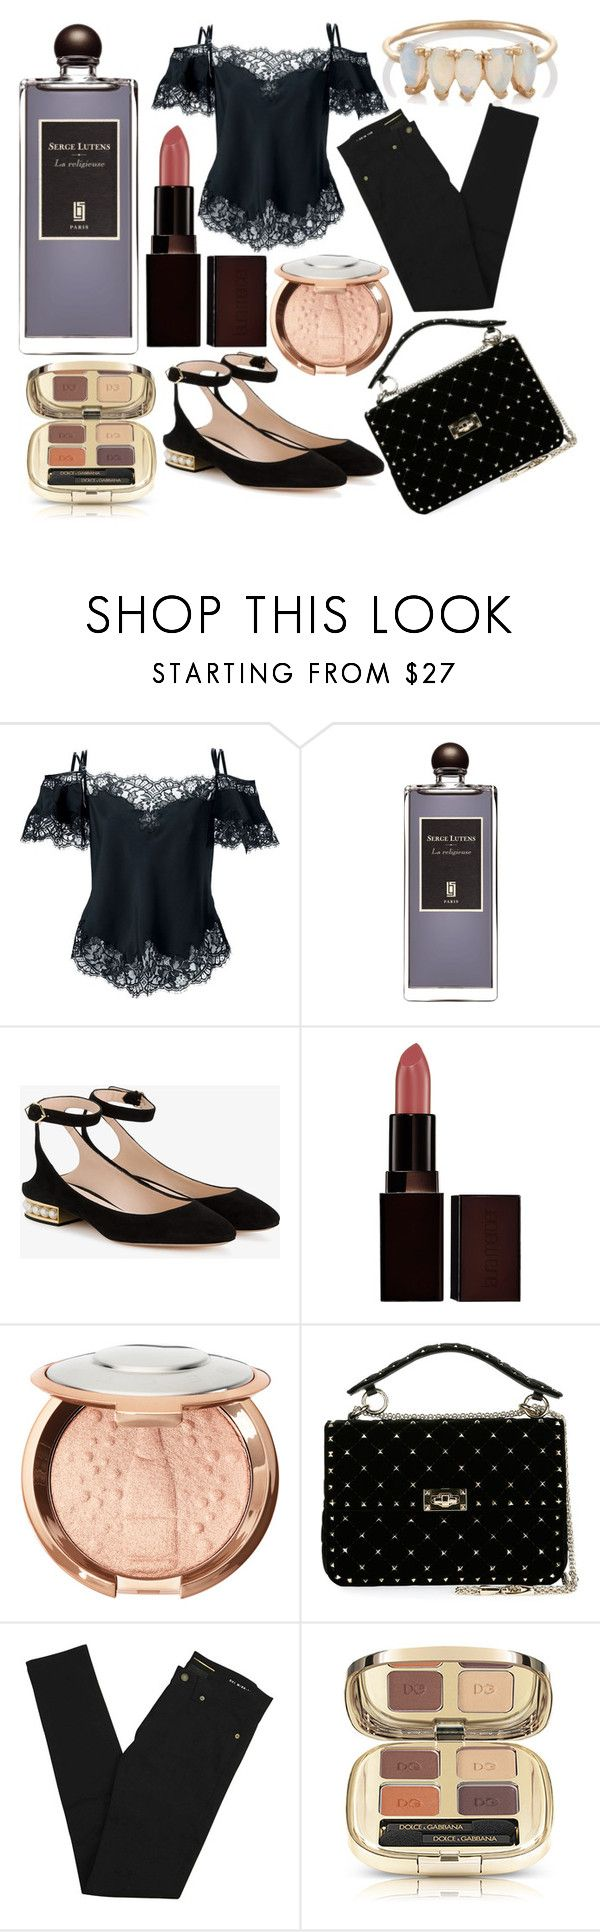 """""""la religieuse"""" by annabellispeterson ❤ liked on Polyvore featuring Givenchy, Serge Lutens, Nicholas Kirkwood, Laura Mercier, Valentino, Yves Saint Laurent and Loren Stewart"""